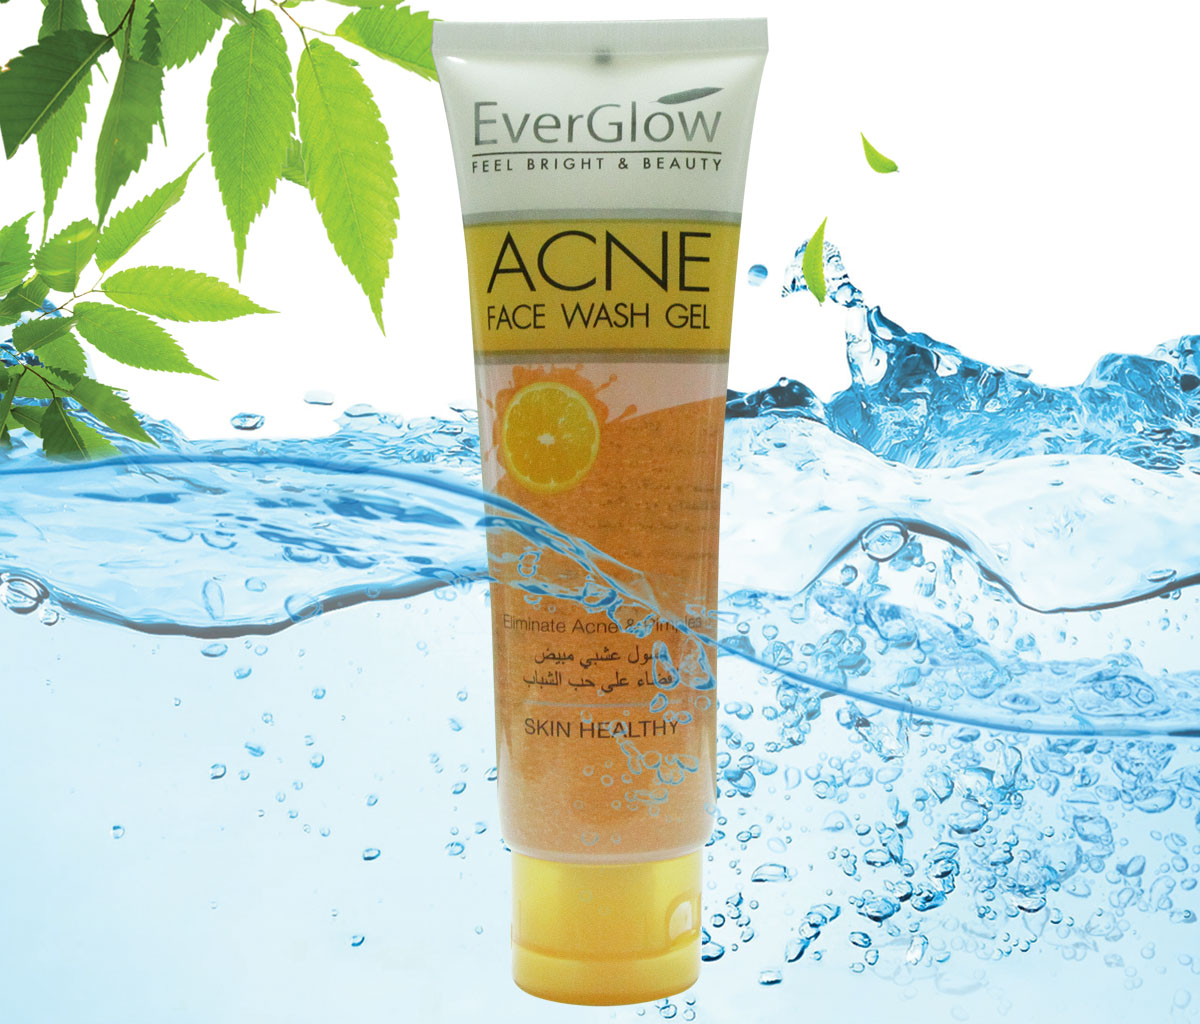 EVERGLOW ACNE FACE WASH GEL